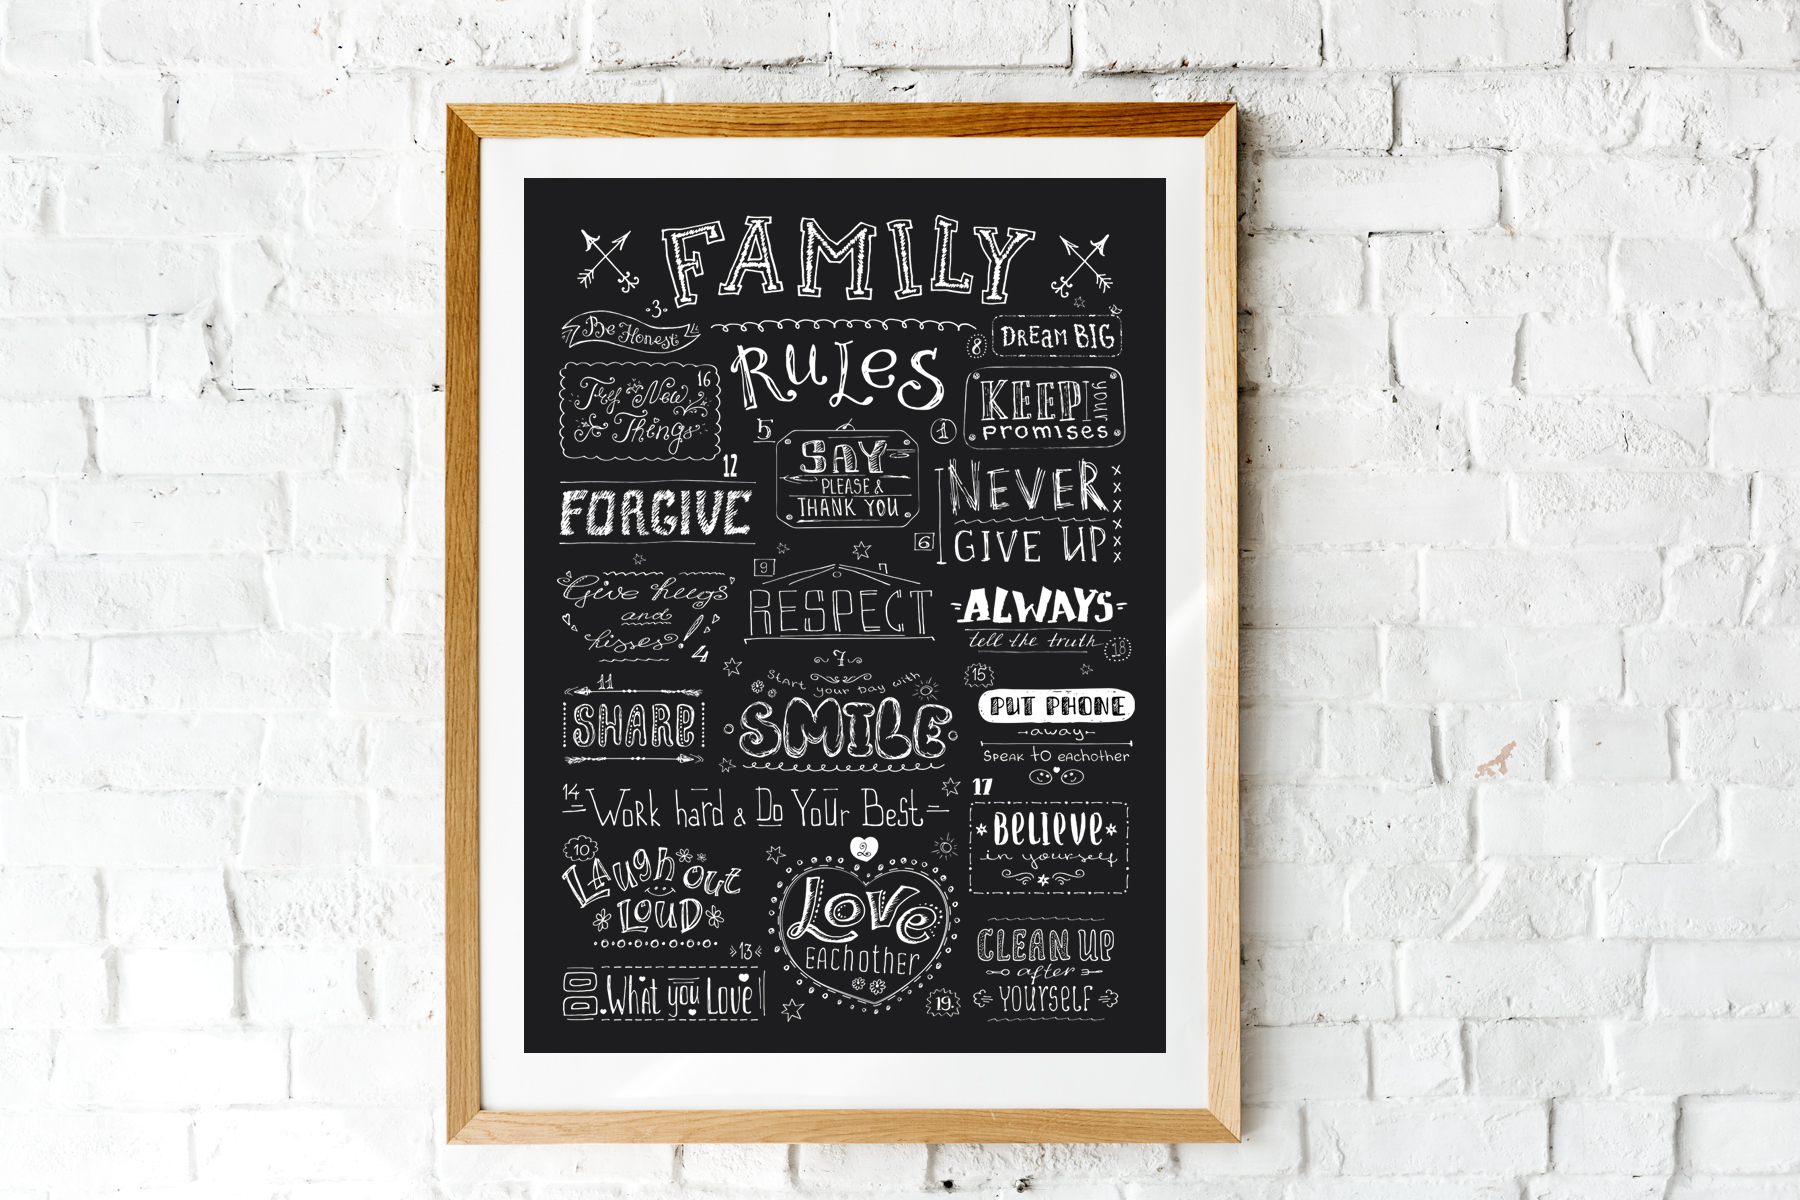 Family rules banner,cute poster example image 2